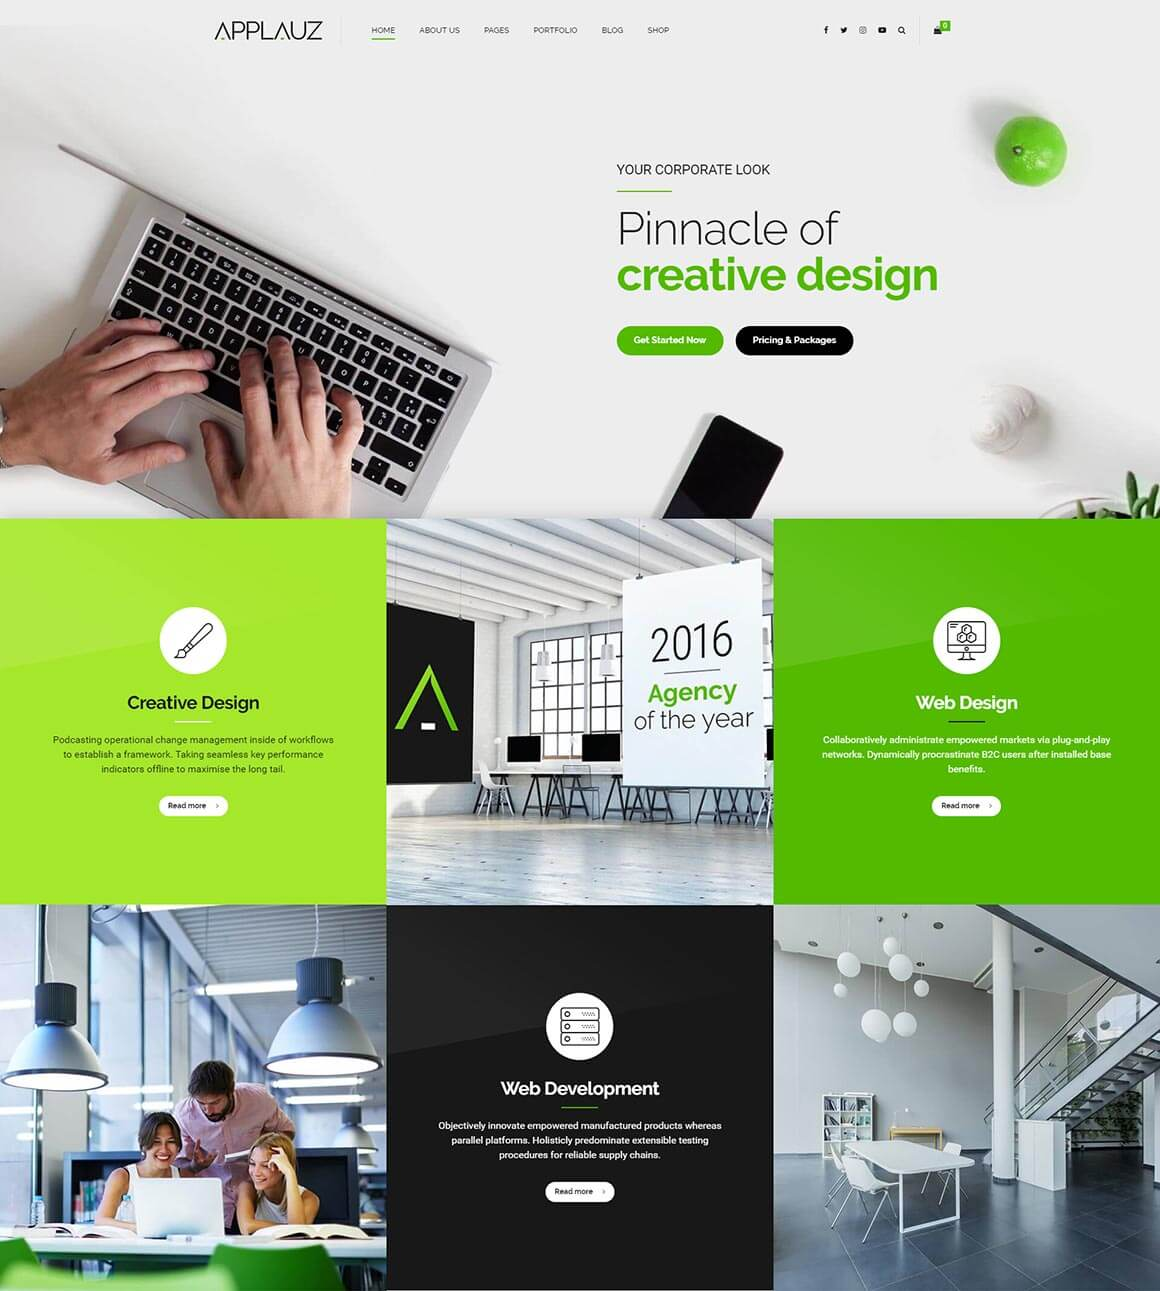 http://applauz.bold-themes.com/wp-content/uploads/2018/02/Screenshot-Creative.jpg